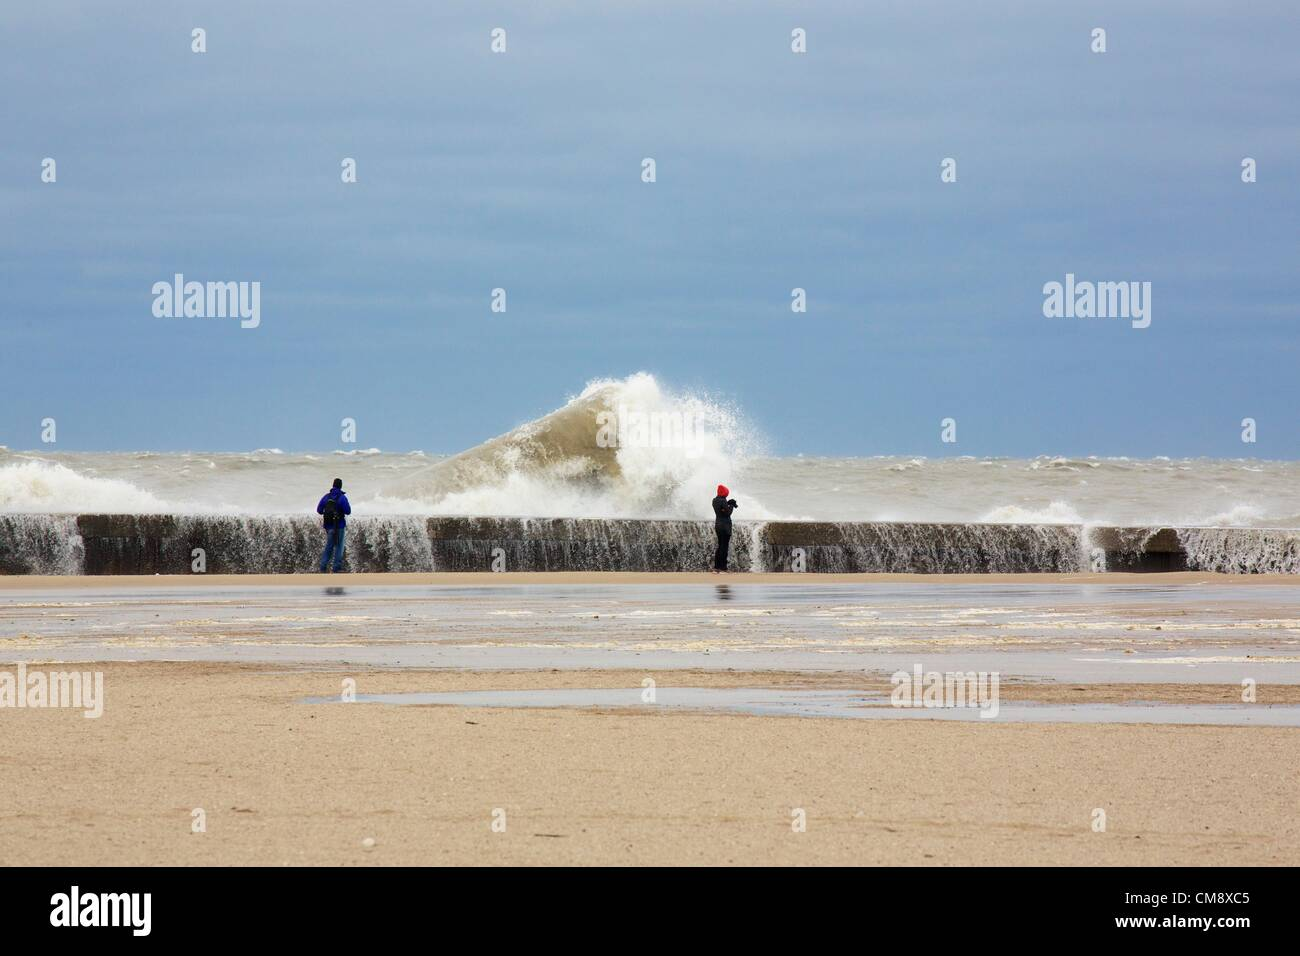 Chicago, Illinois. 30th October, 2012.  Large waves crash into the seawall at North Avenue Beach as photographers - Stock Image